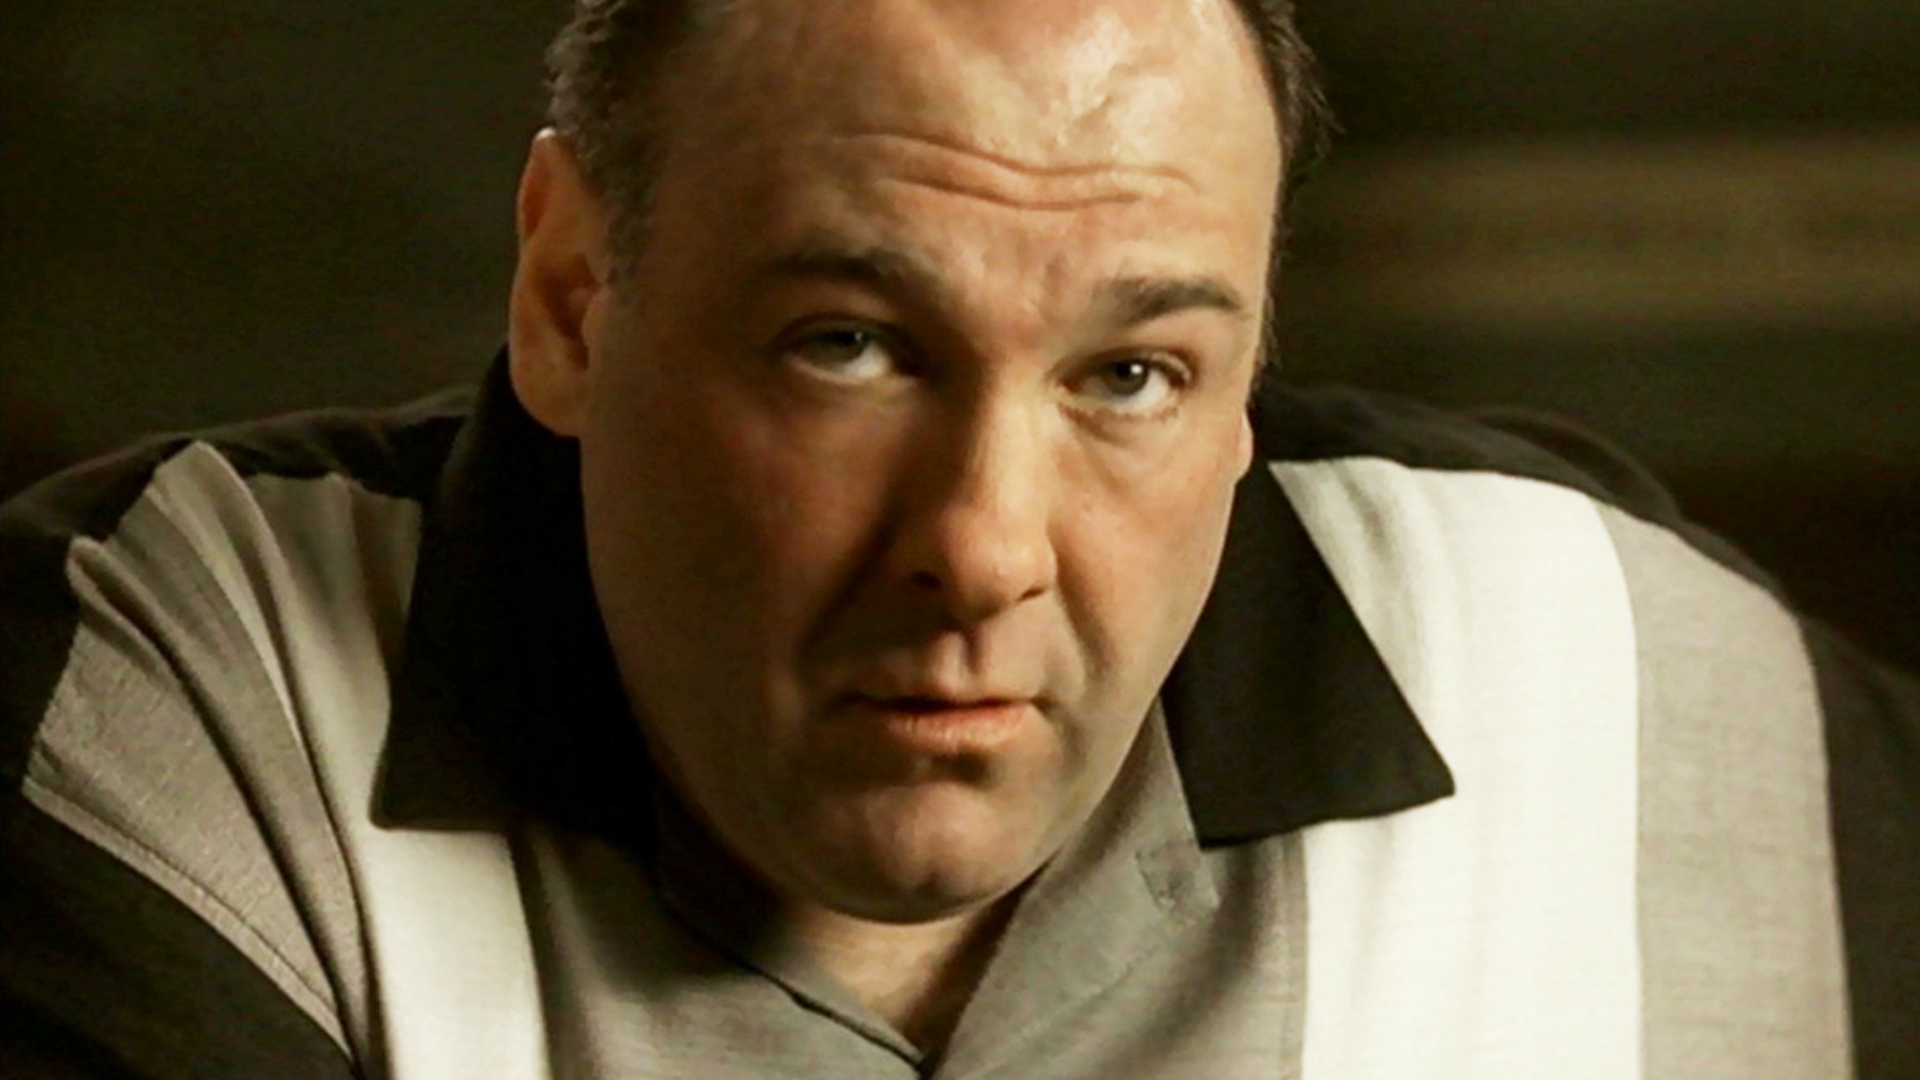 Made in America - the shocking end of The Sopranos